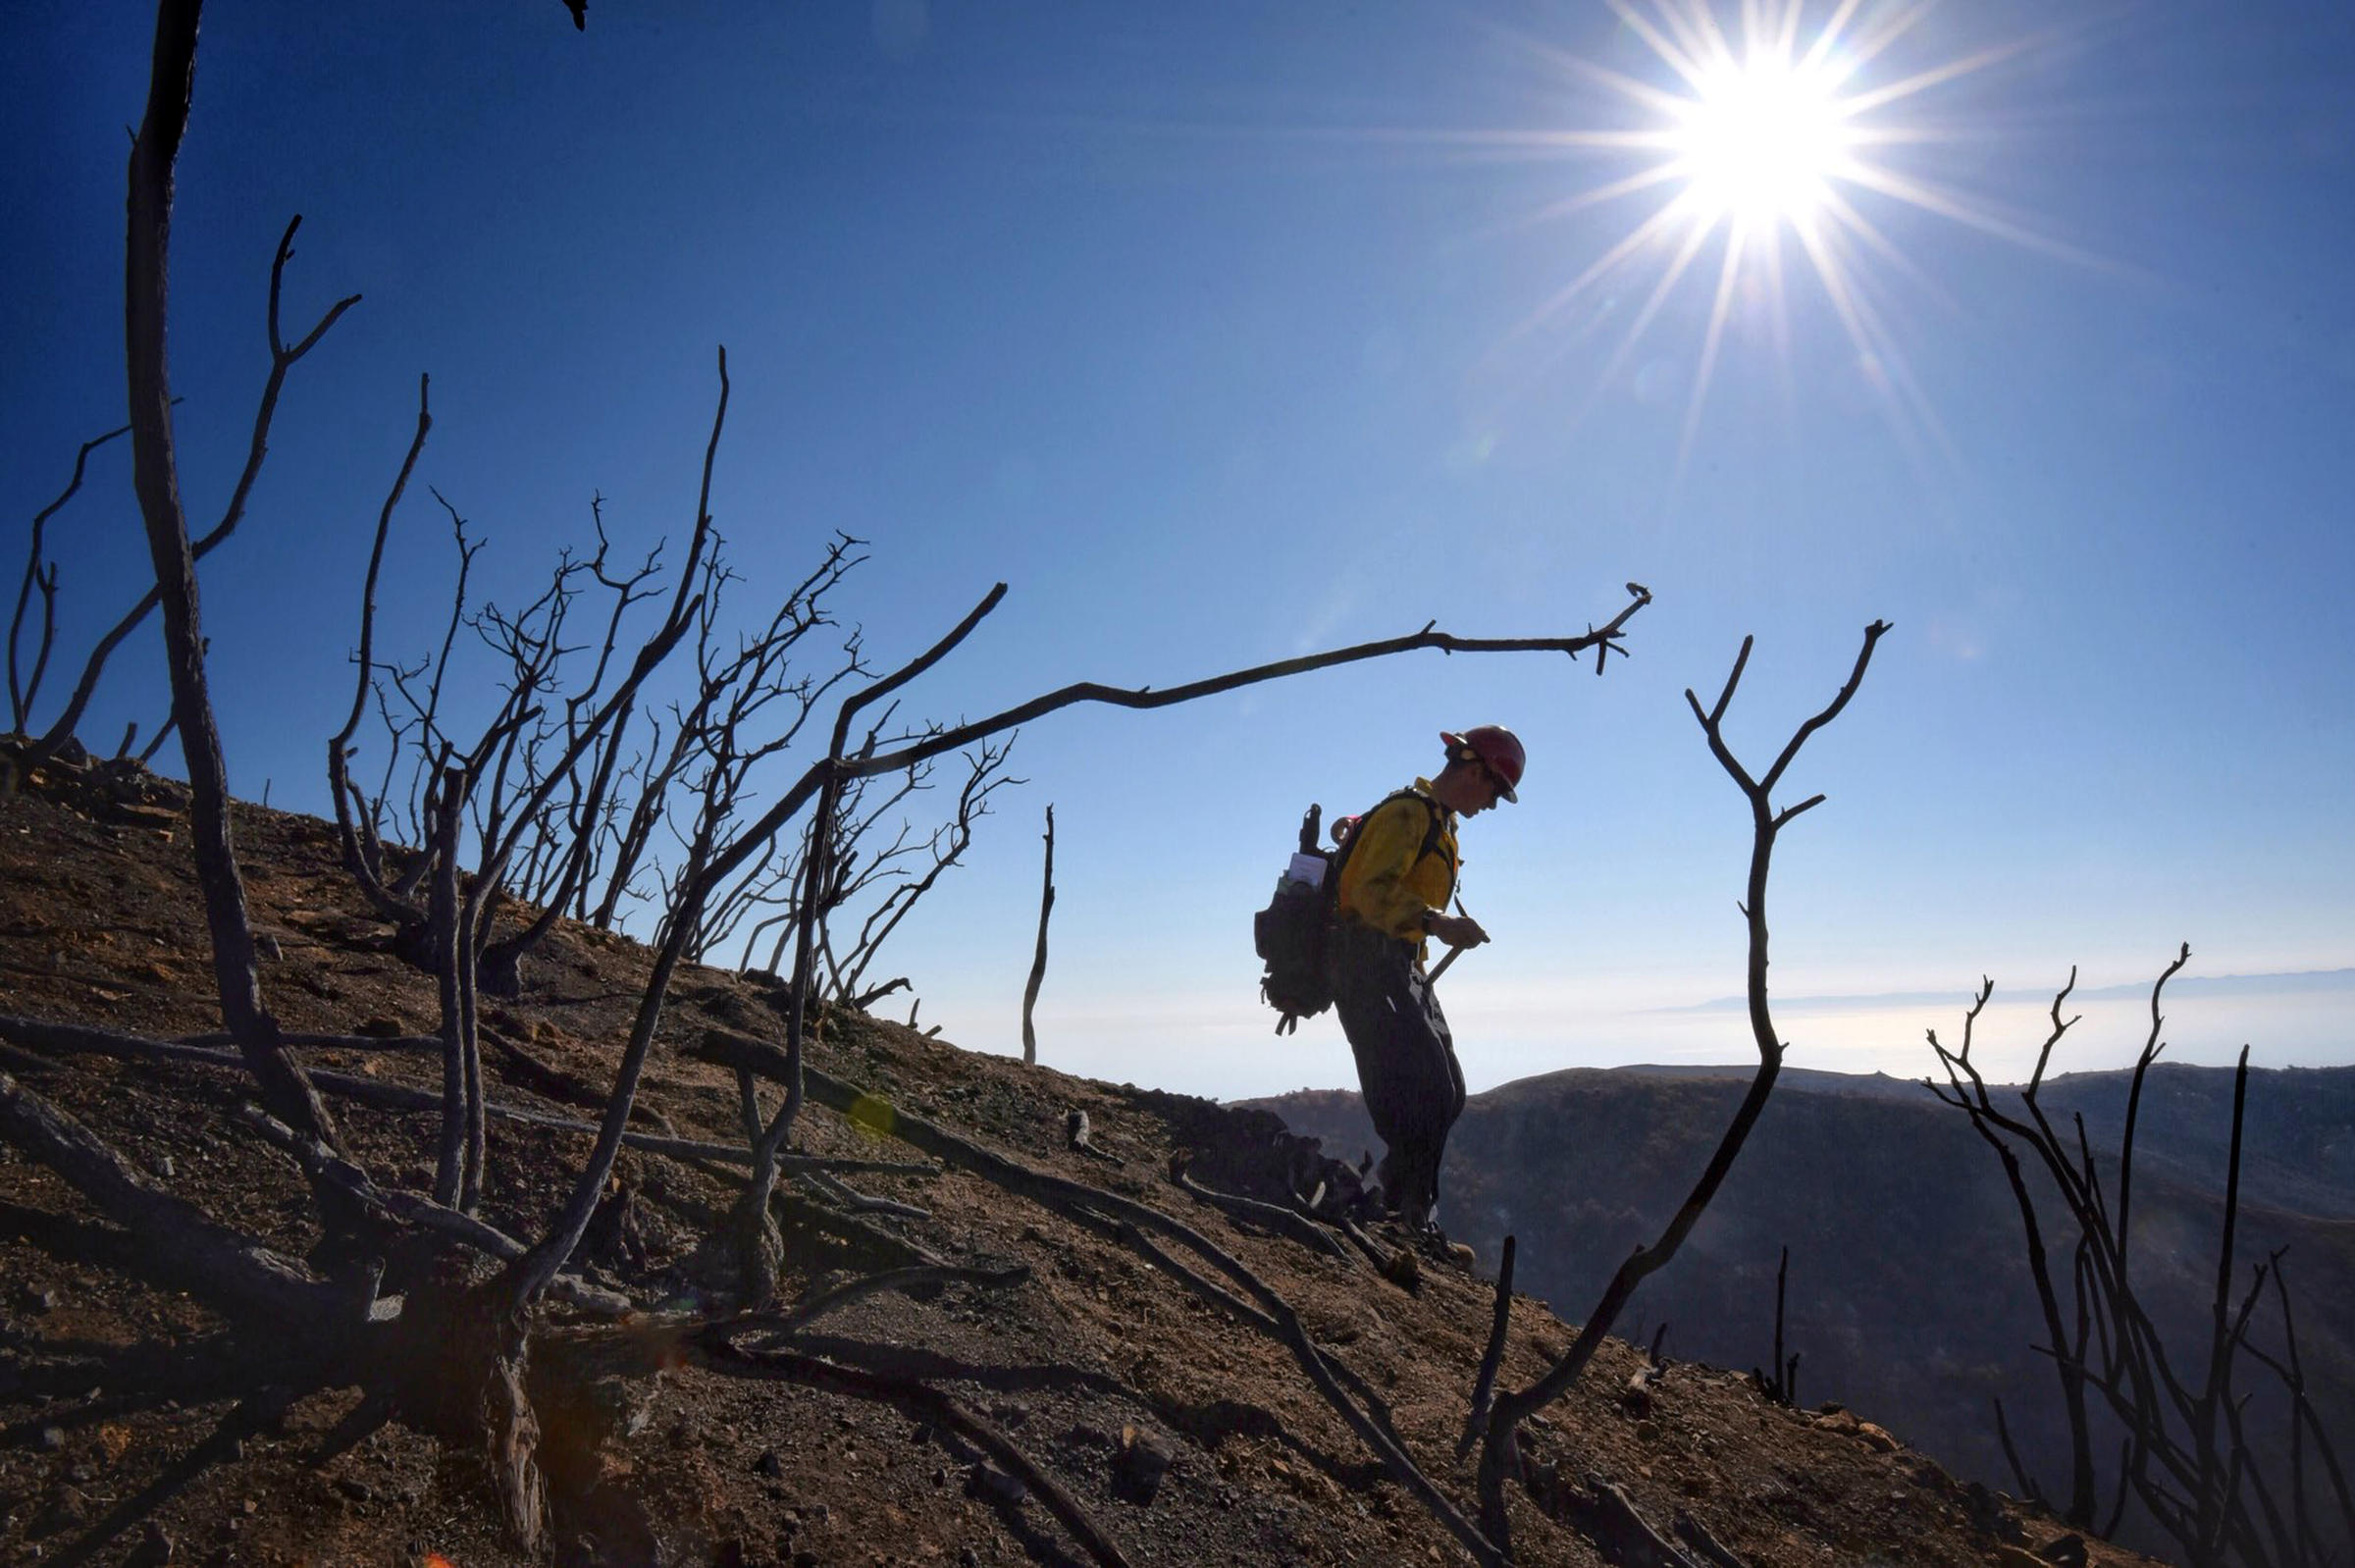 Thomas Fire 100 Percent Contained As Of Friday Morning